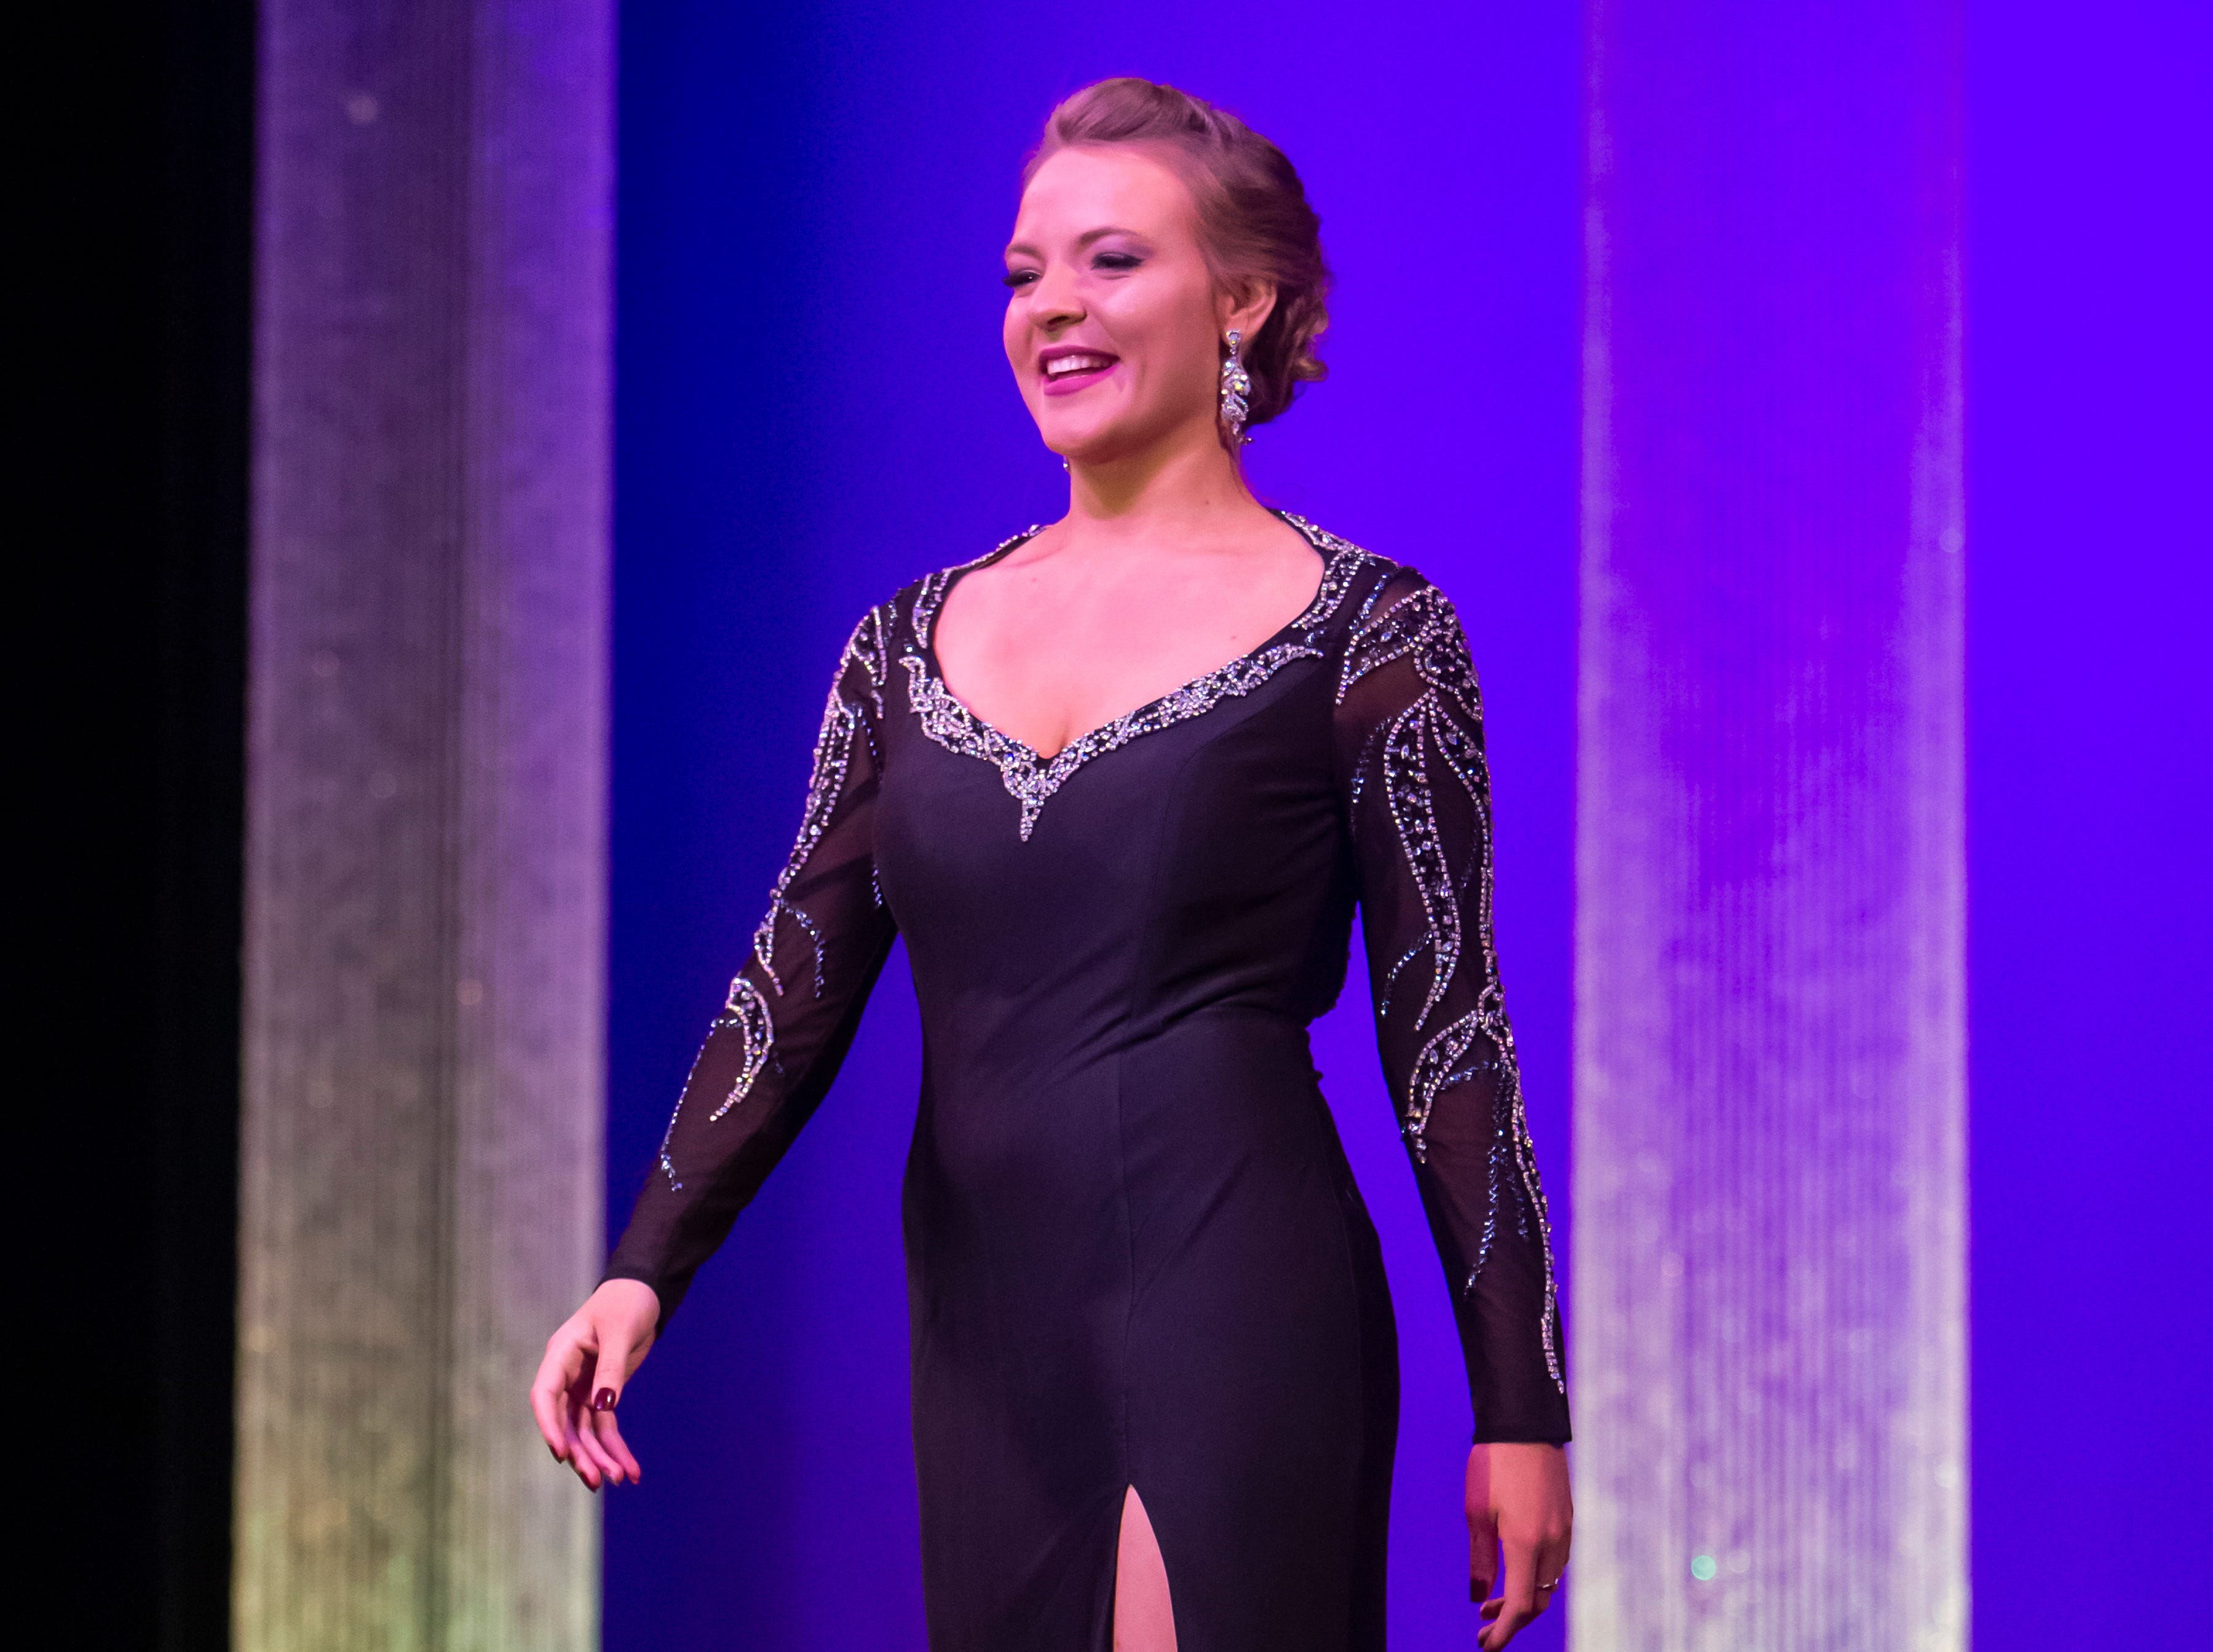 Shauna Clemens wins 3rd runner up during the Miss Oshkosh Scholarship Pageant Saturday, March 2, 2019, at Alberta Kimball Auditorium in Oshkosh, Wis.